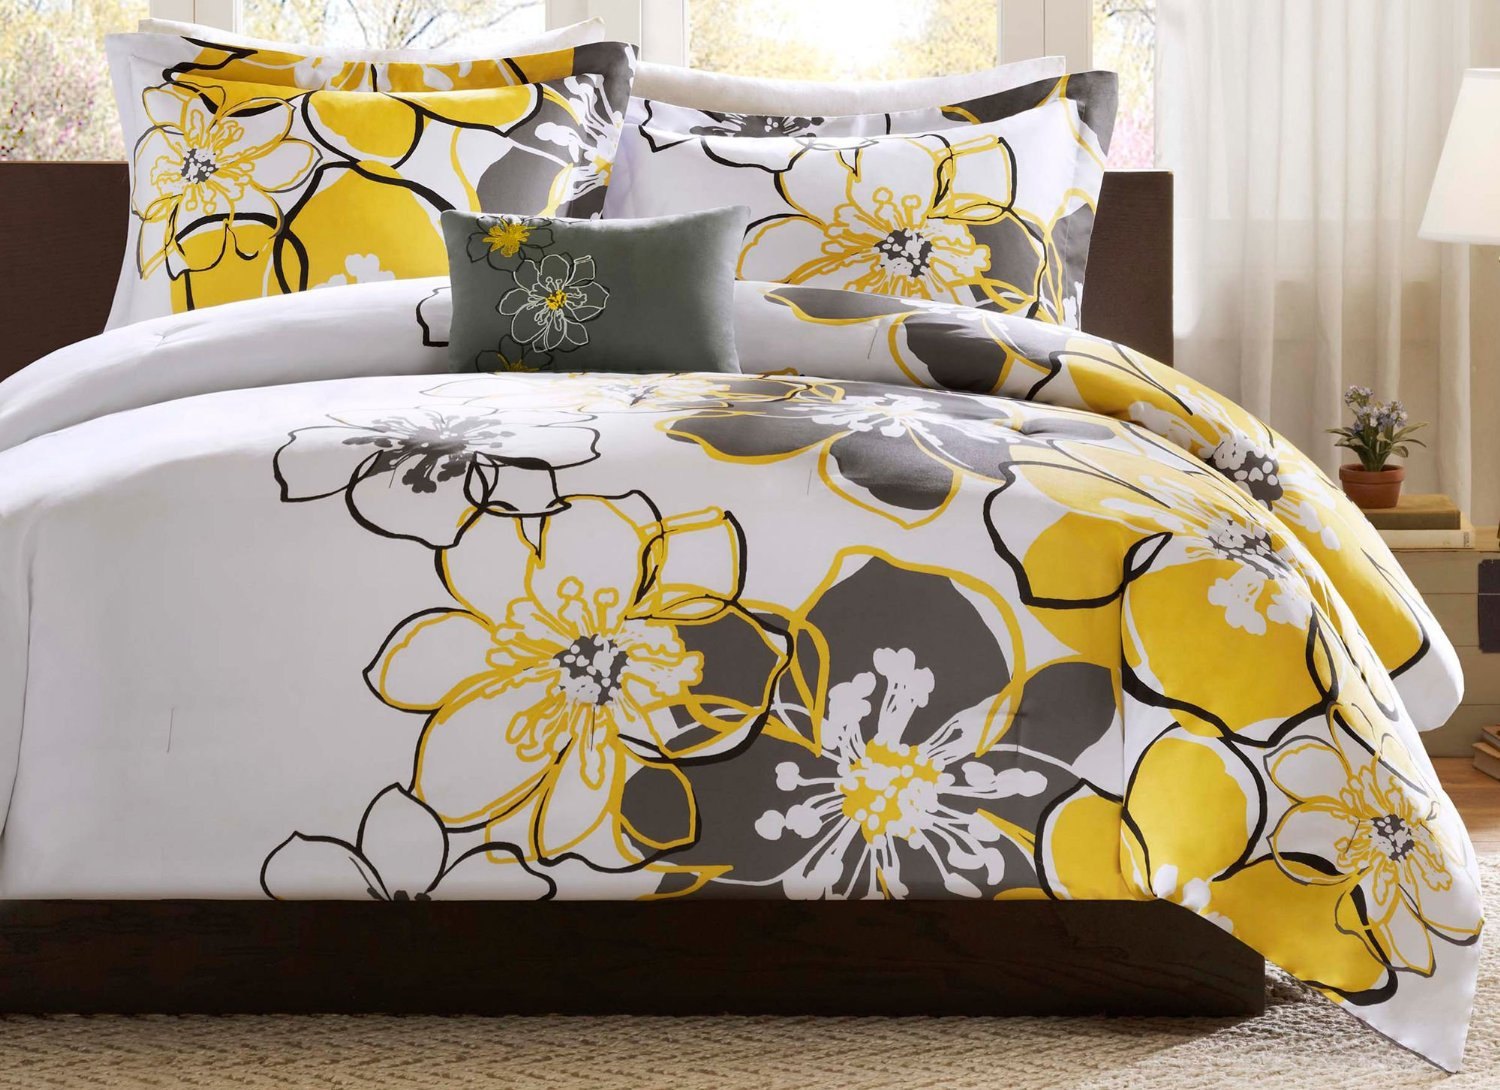 sheets comforter bed best bedspread mustard colored bedding yellow queen and sets grey set gray comforters com netsyncro